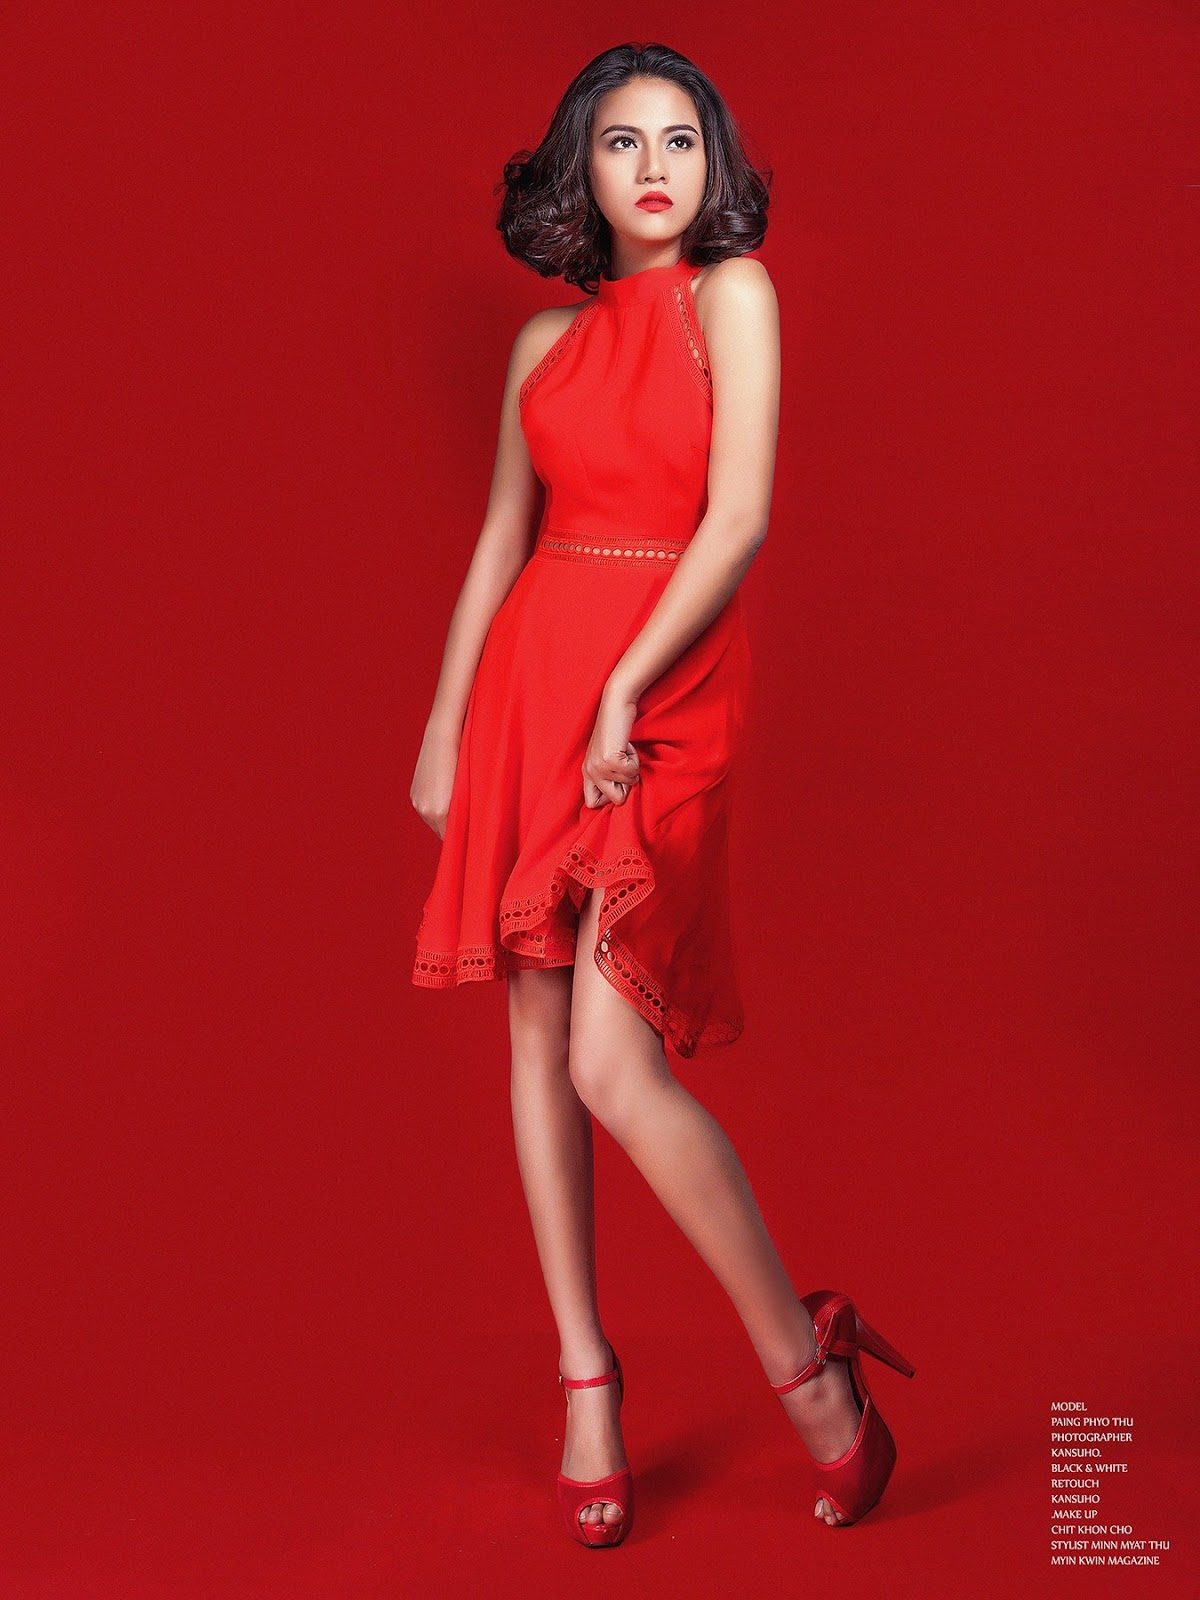 Red Girl Paing Pyo Thu In Role Model Style For Myin Kwin Magazine